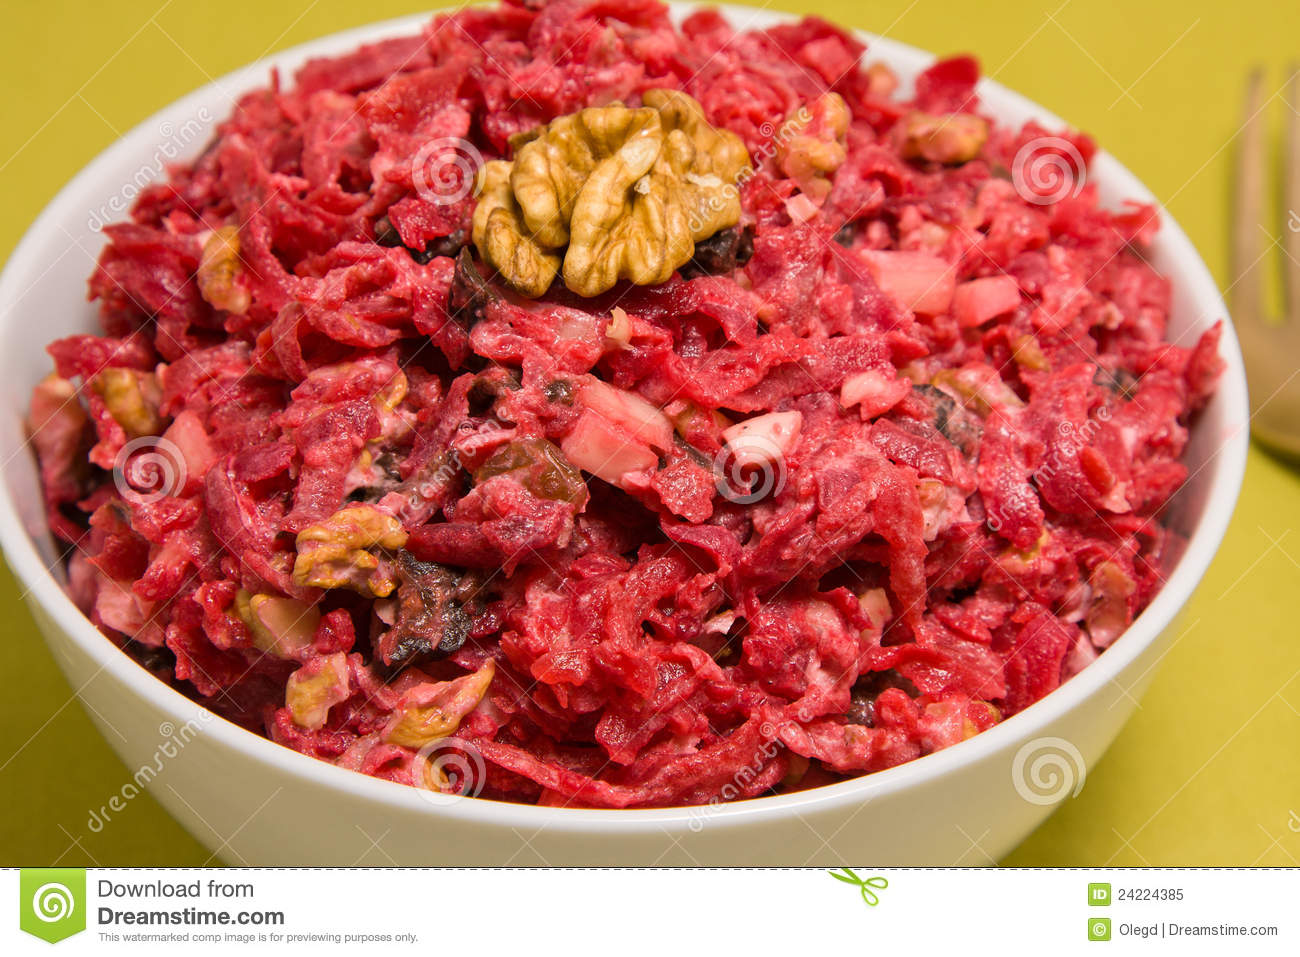 Royalty Free Stock Photo: Salad with beets, dried plums, nuts